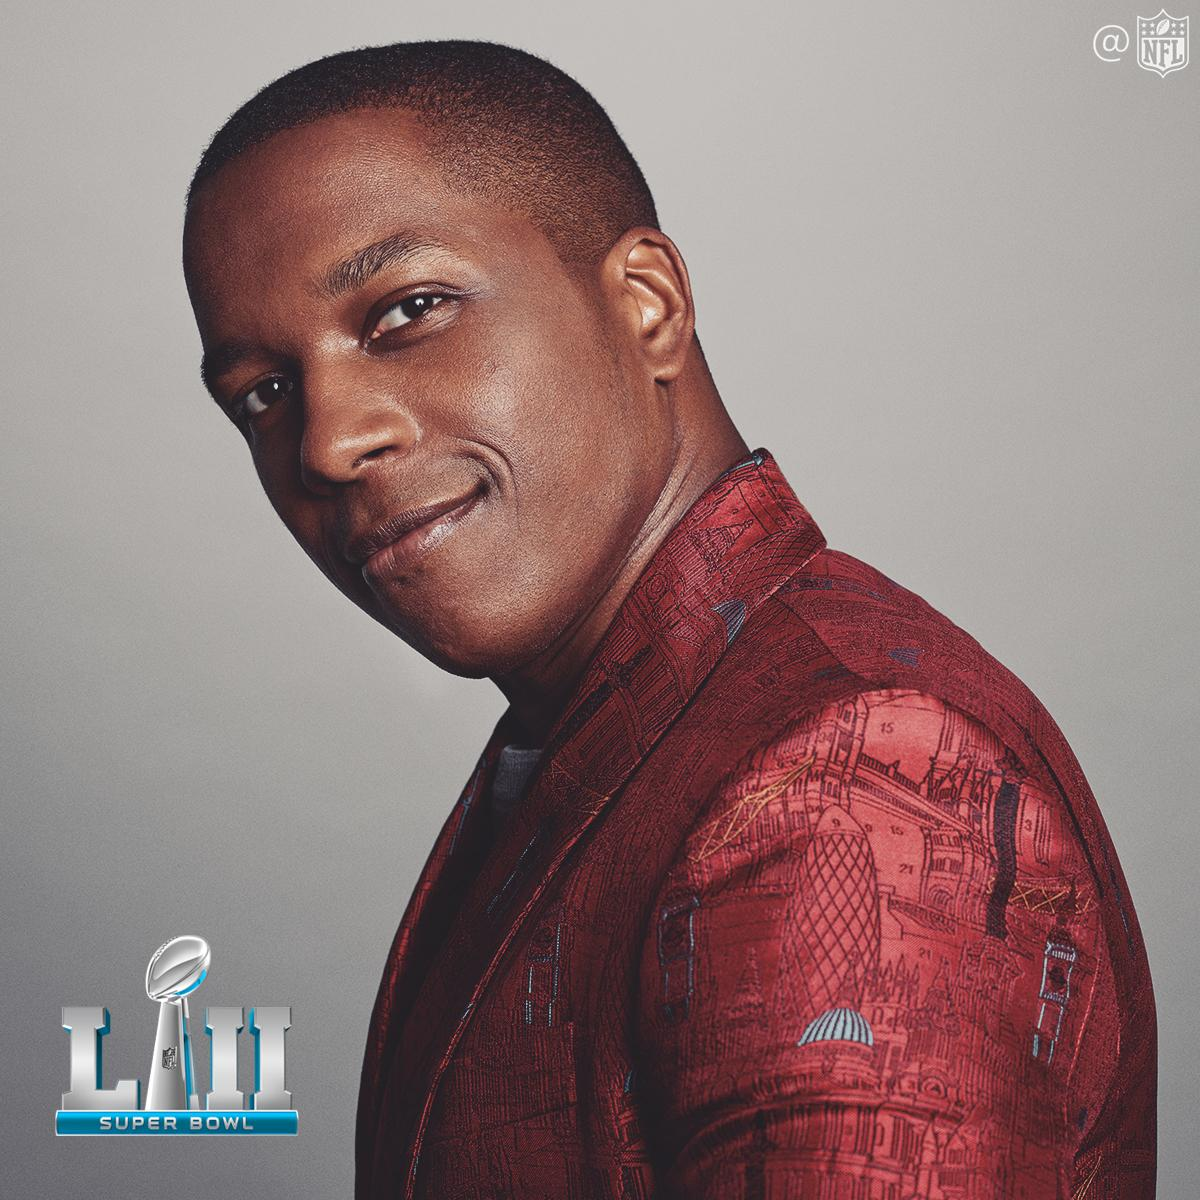 .@leslieodomjr to sing 'America The Beautiful' at the @SuperBowl: https://t.co/vjaRSkT8OX #SBLII https://t.co/lACF1wYim6